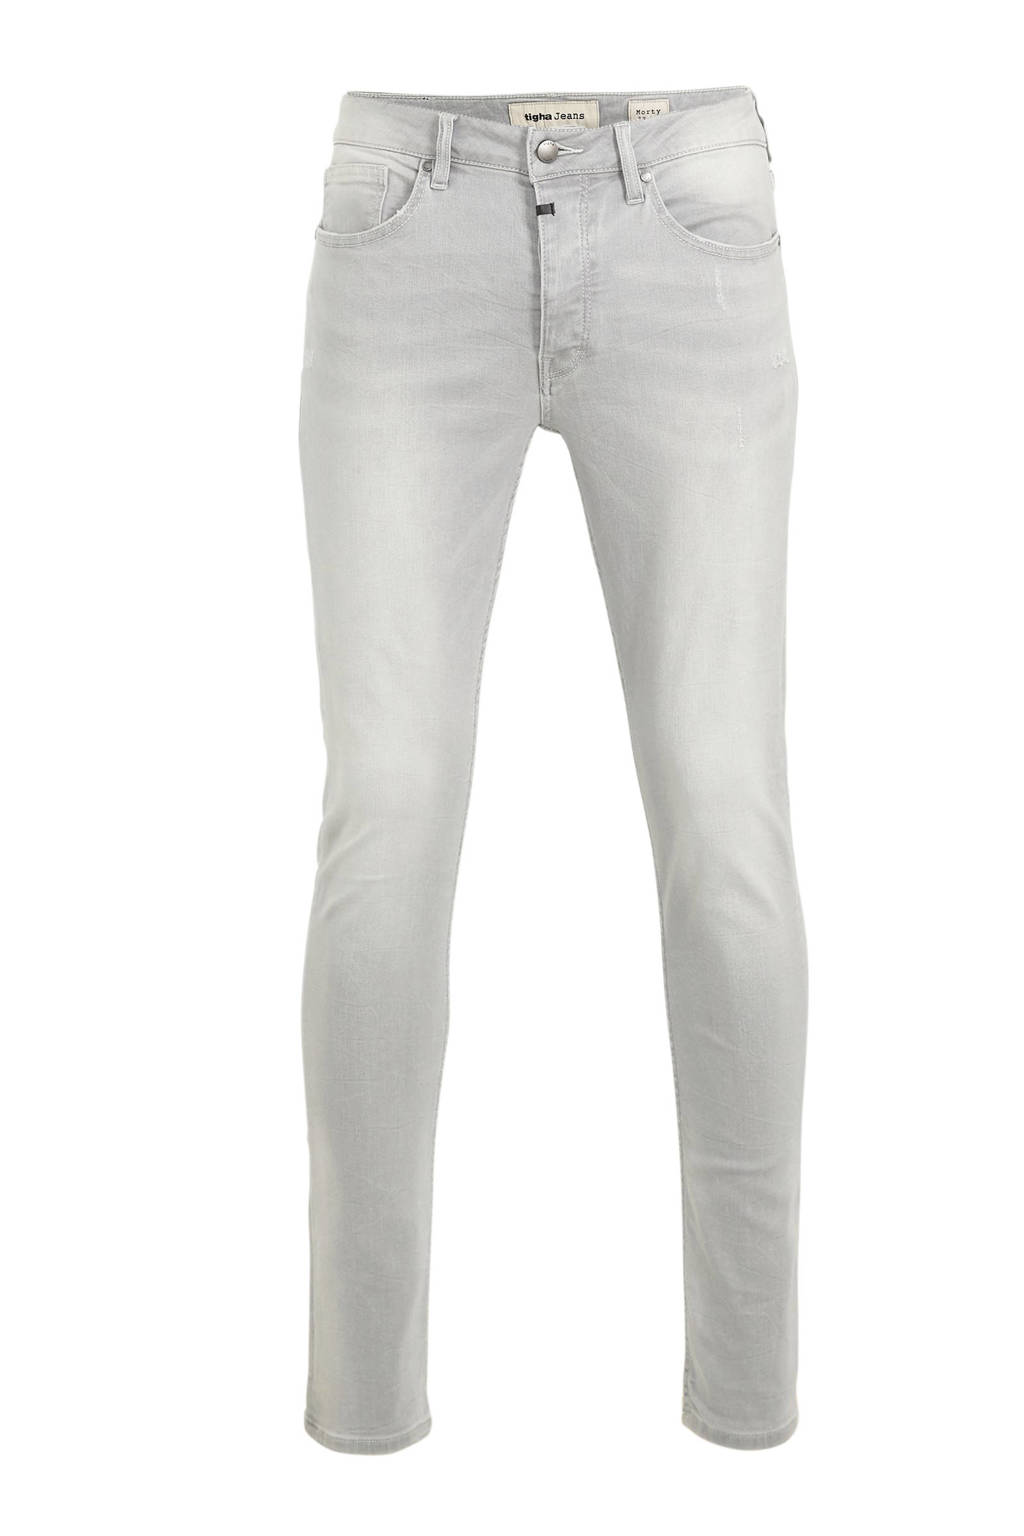 Tigha slim fit jeans Morty light grey, Light Grey